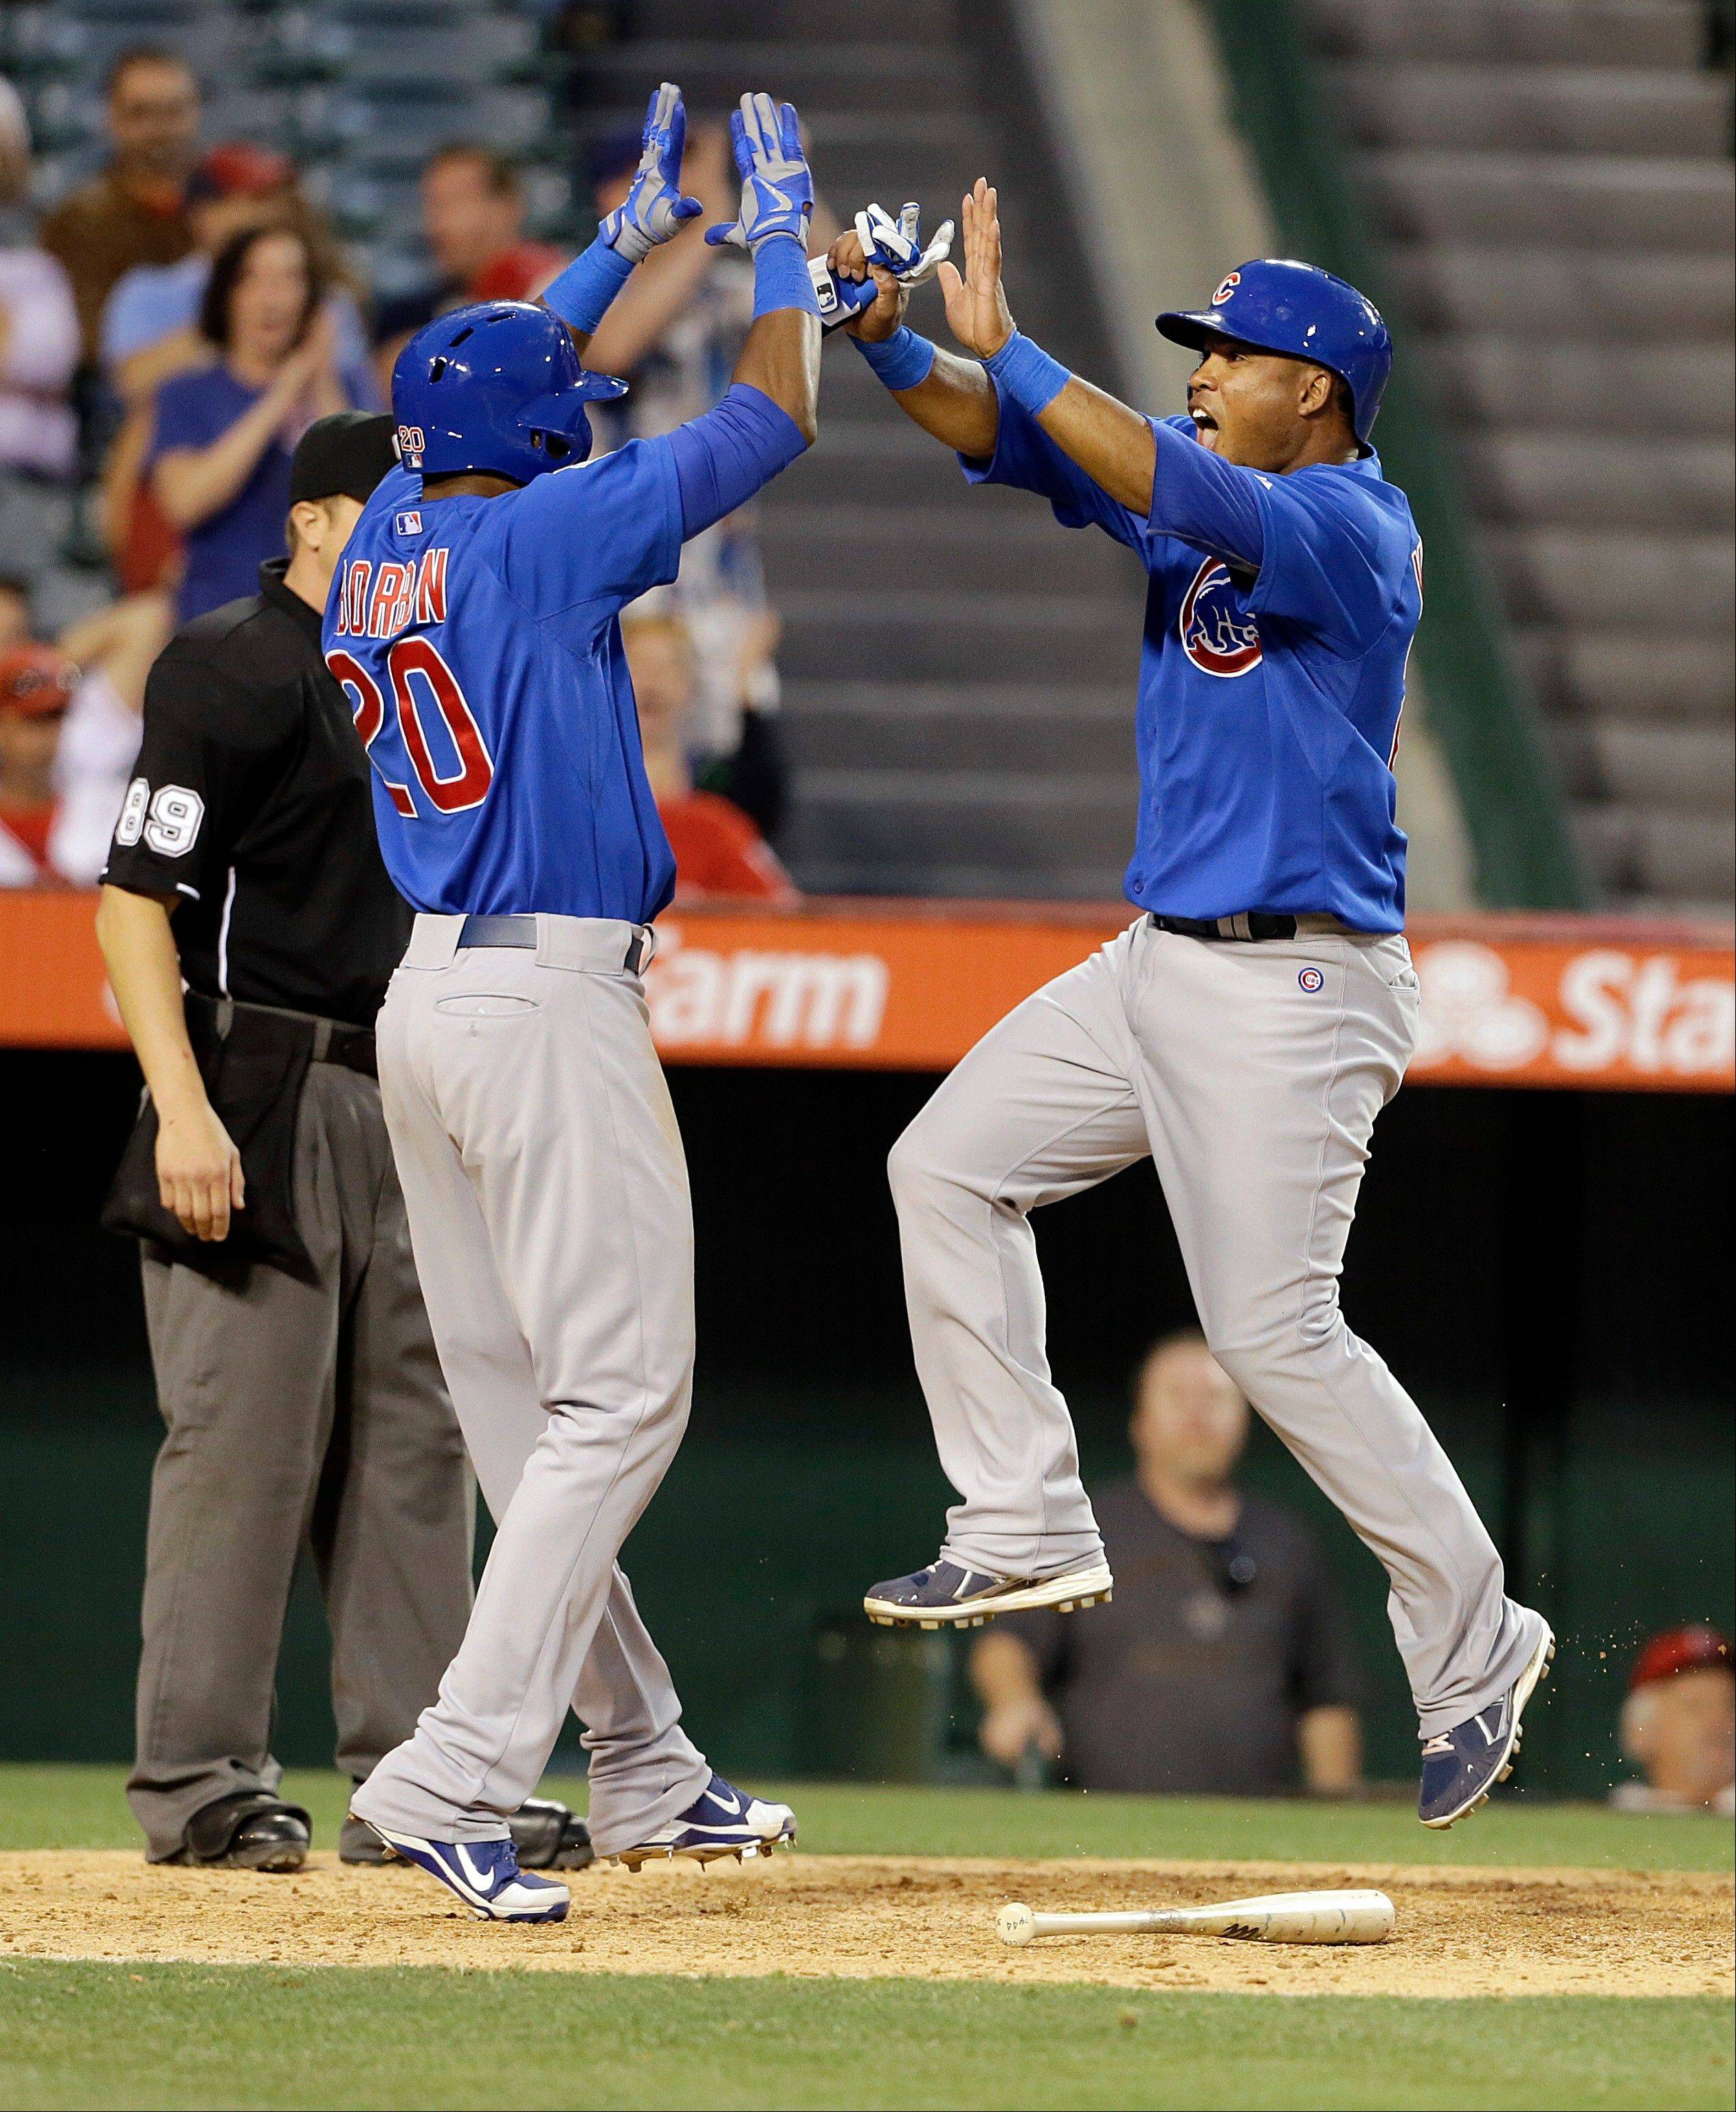 Chicago Cubs Julio Borbon, left, and Luis Valbuena, two of three runners who scored on a an Anthony Rizzo double, celebrate in the tenth inning against the Los Angeles Angels in a baseball game in Anaheim, Calif., Wednesday, June 5, 2013.